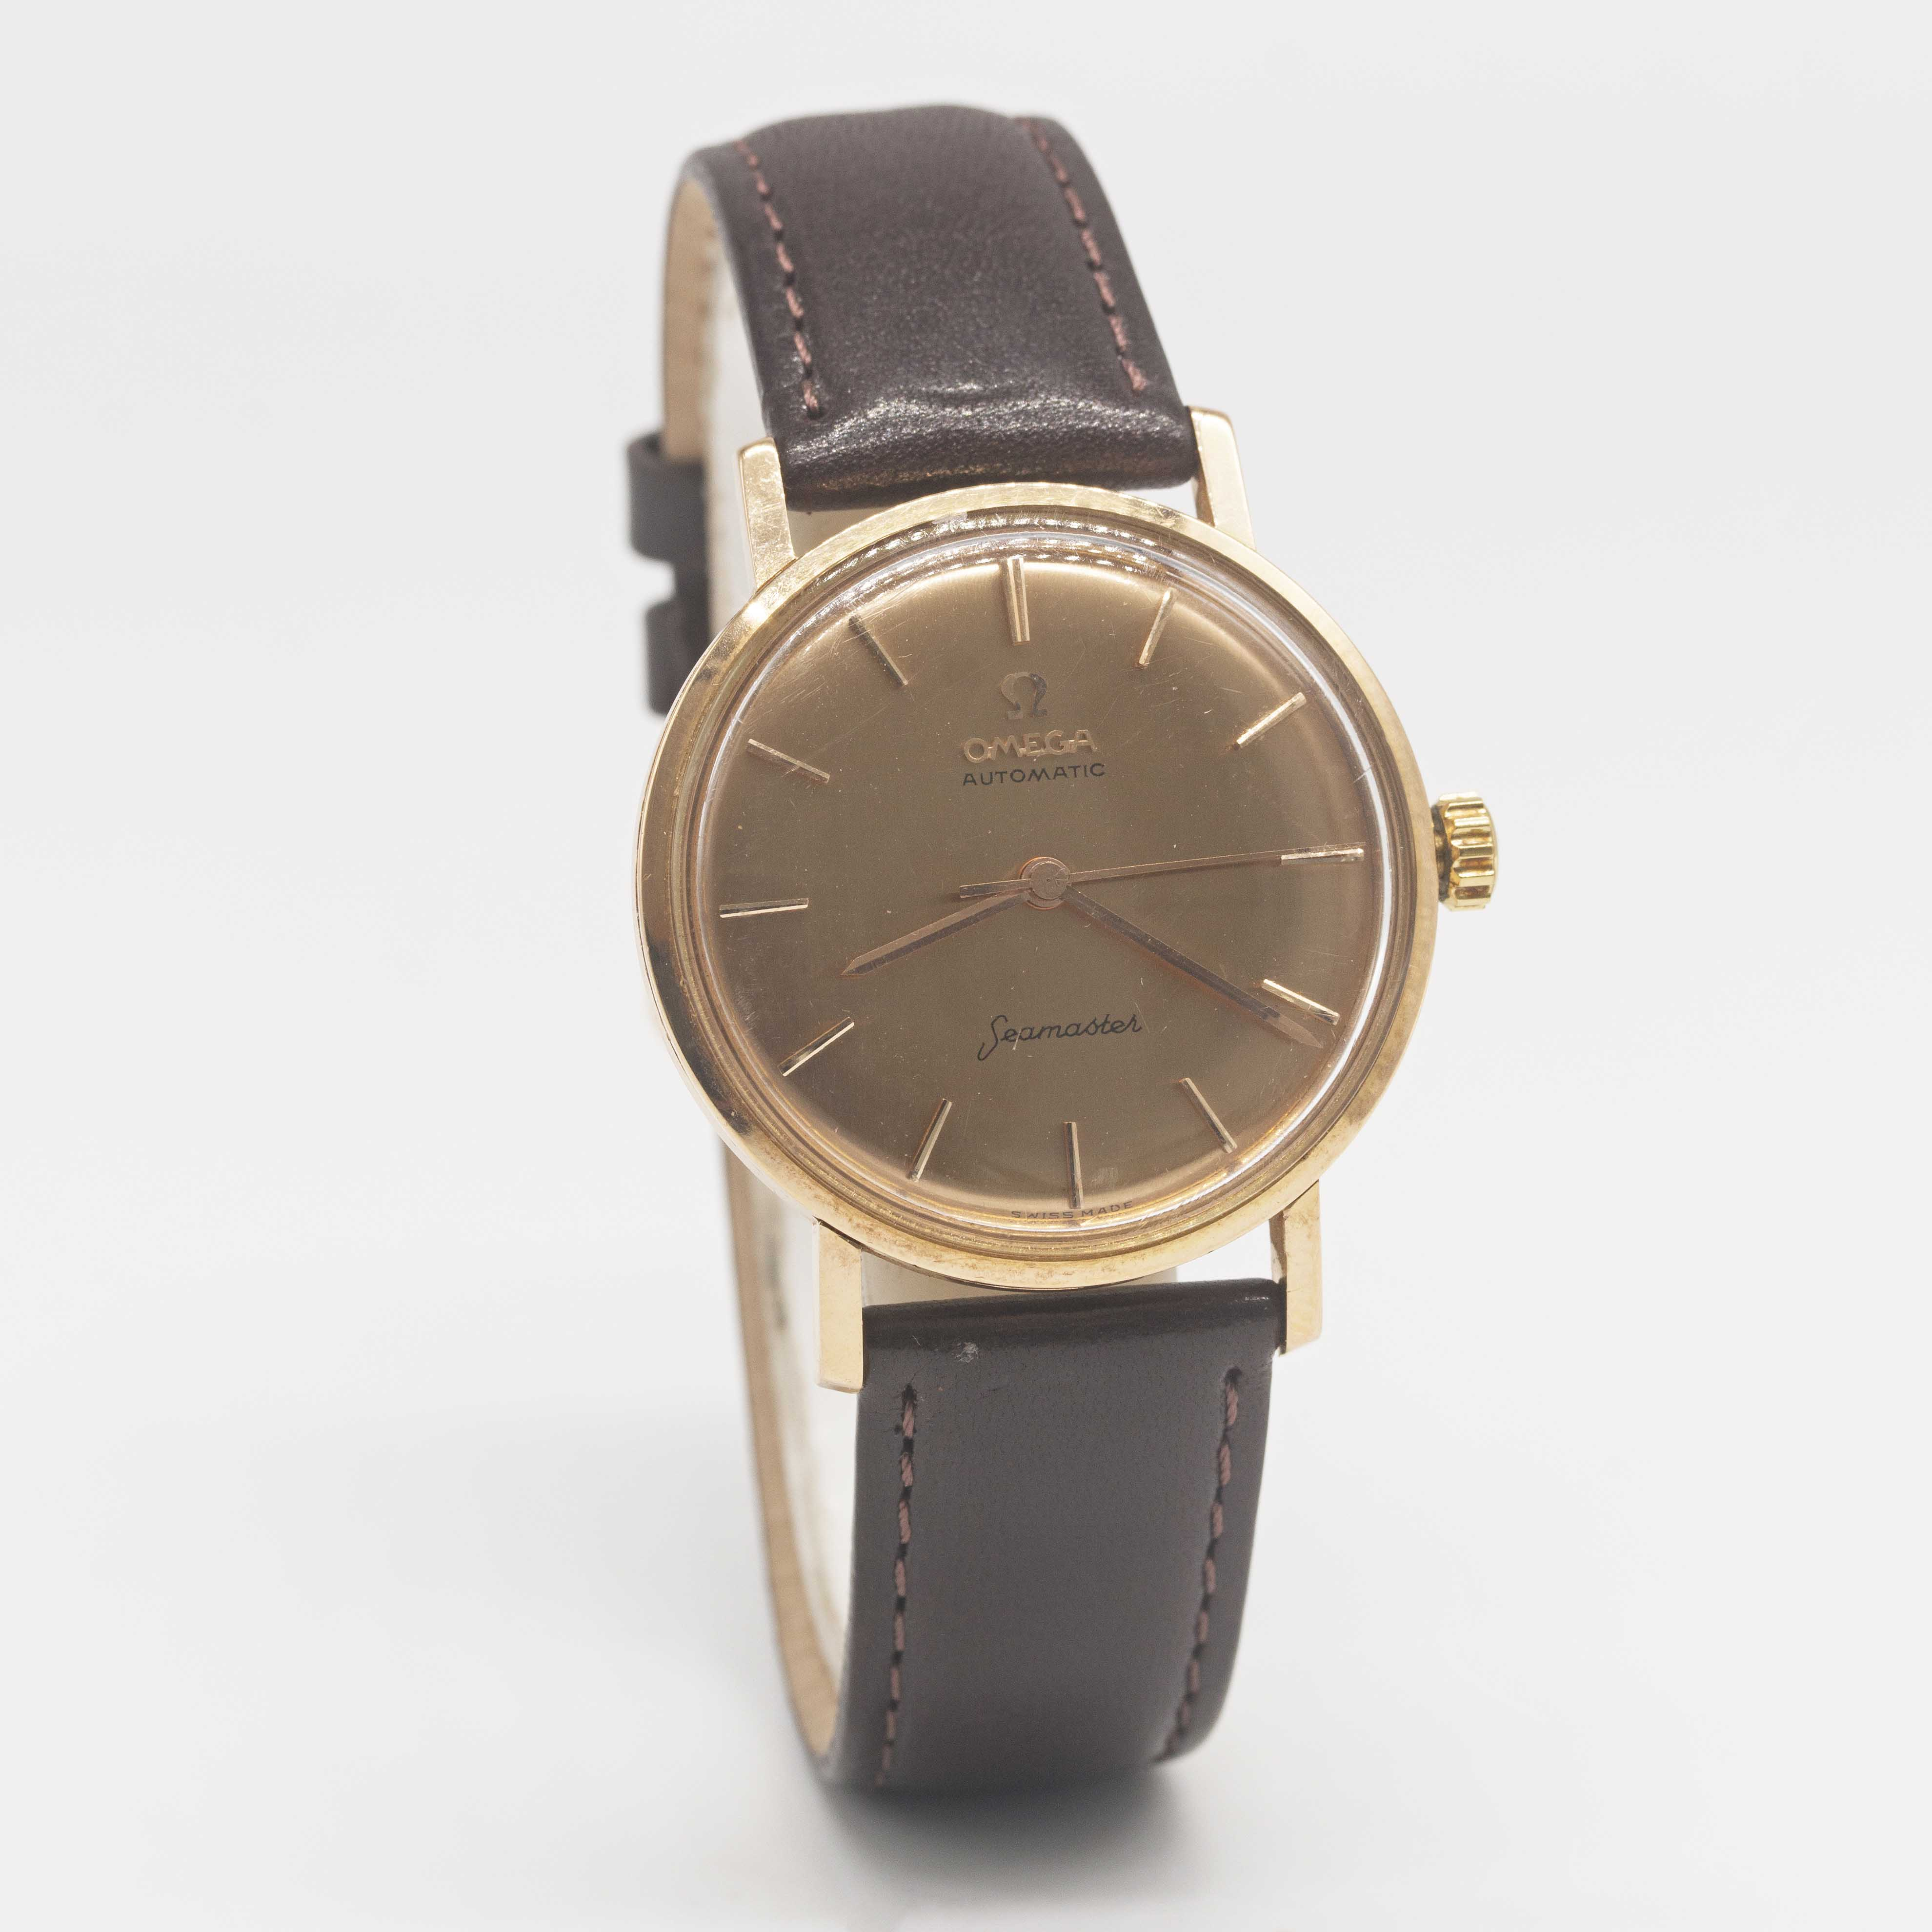 Lot 17 - A GENTLEMAN'S 18K SOLID ROSE GOLD OMEGA SEAMASTER AUTOMATIC WRIST WATCH CIRCA 1960s, WITHBRUSHED